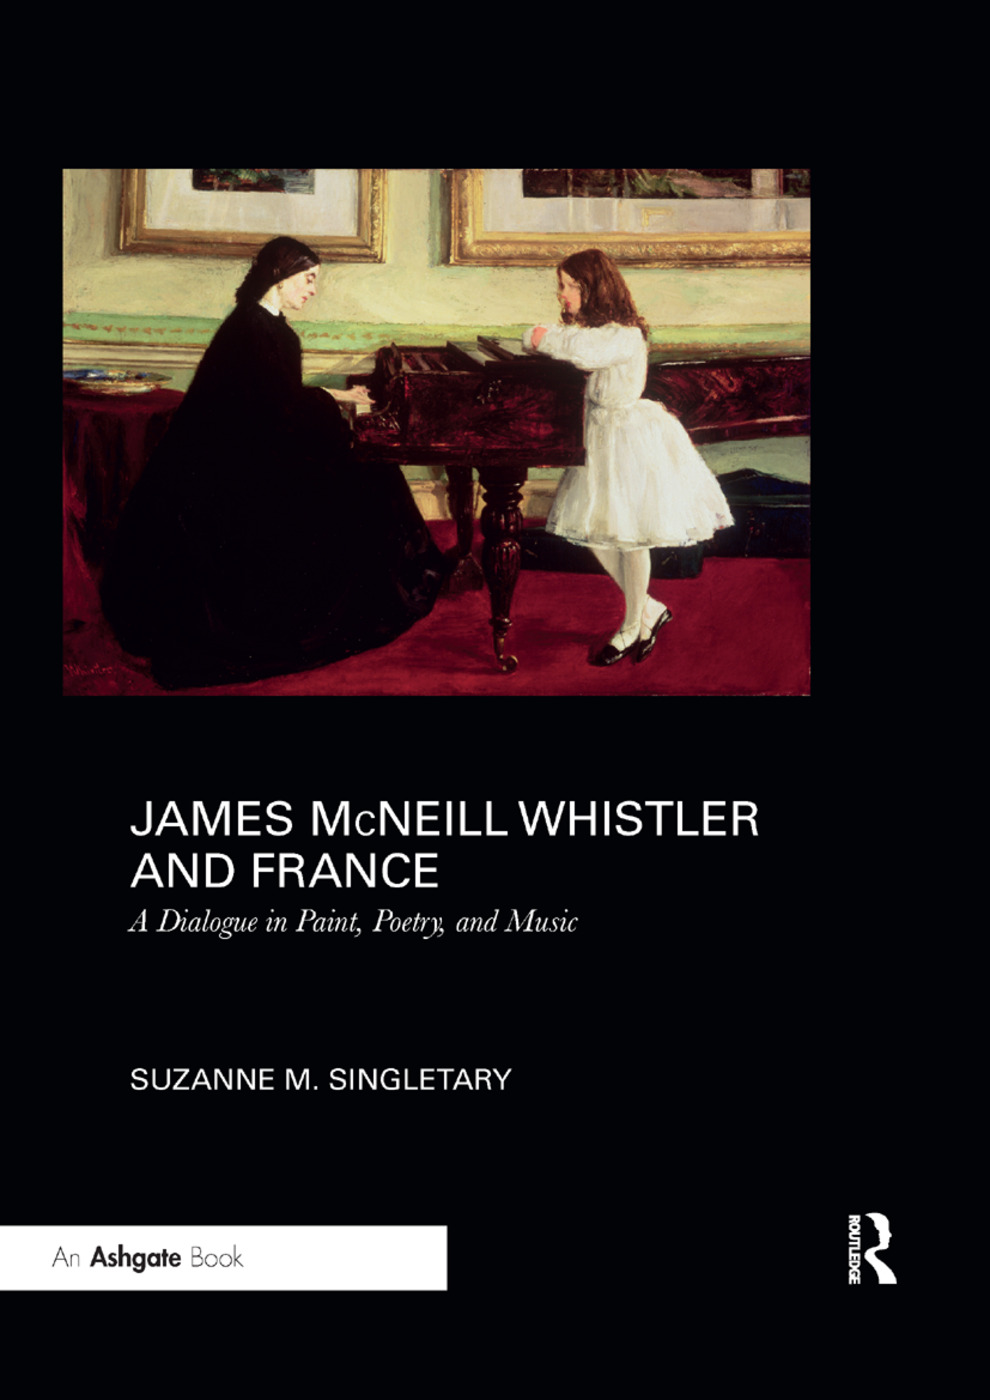 James McNeill Whistler and France: A Dialogue in Paint, Poetry, and Music book cover